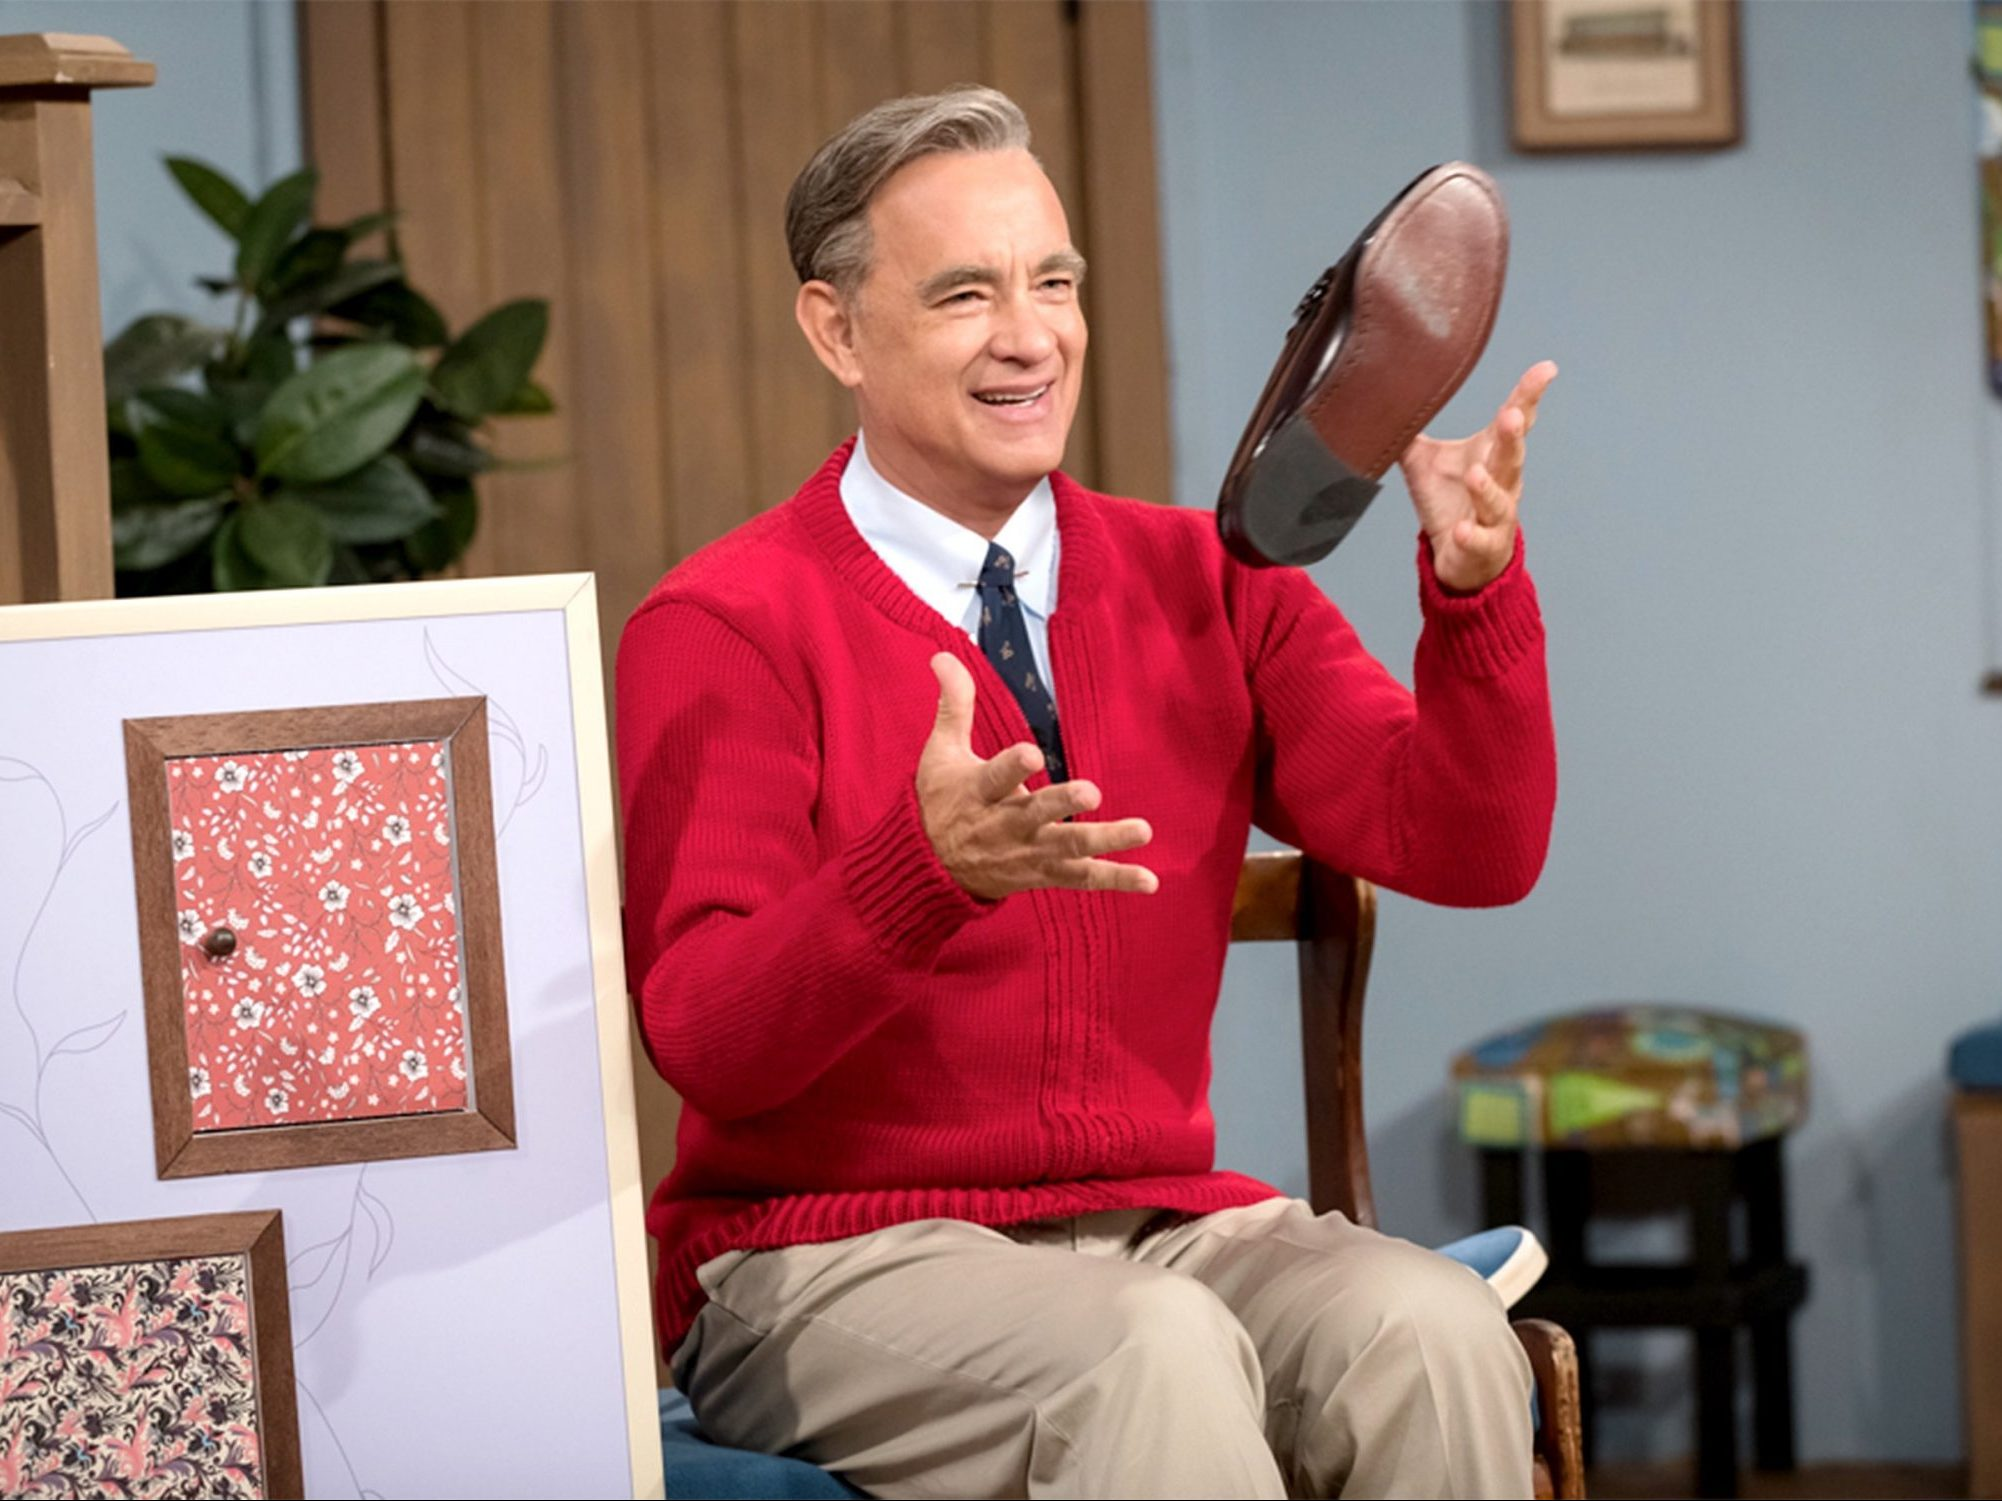 Tom Hanks warms hearts in the ...